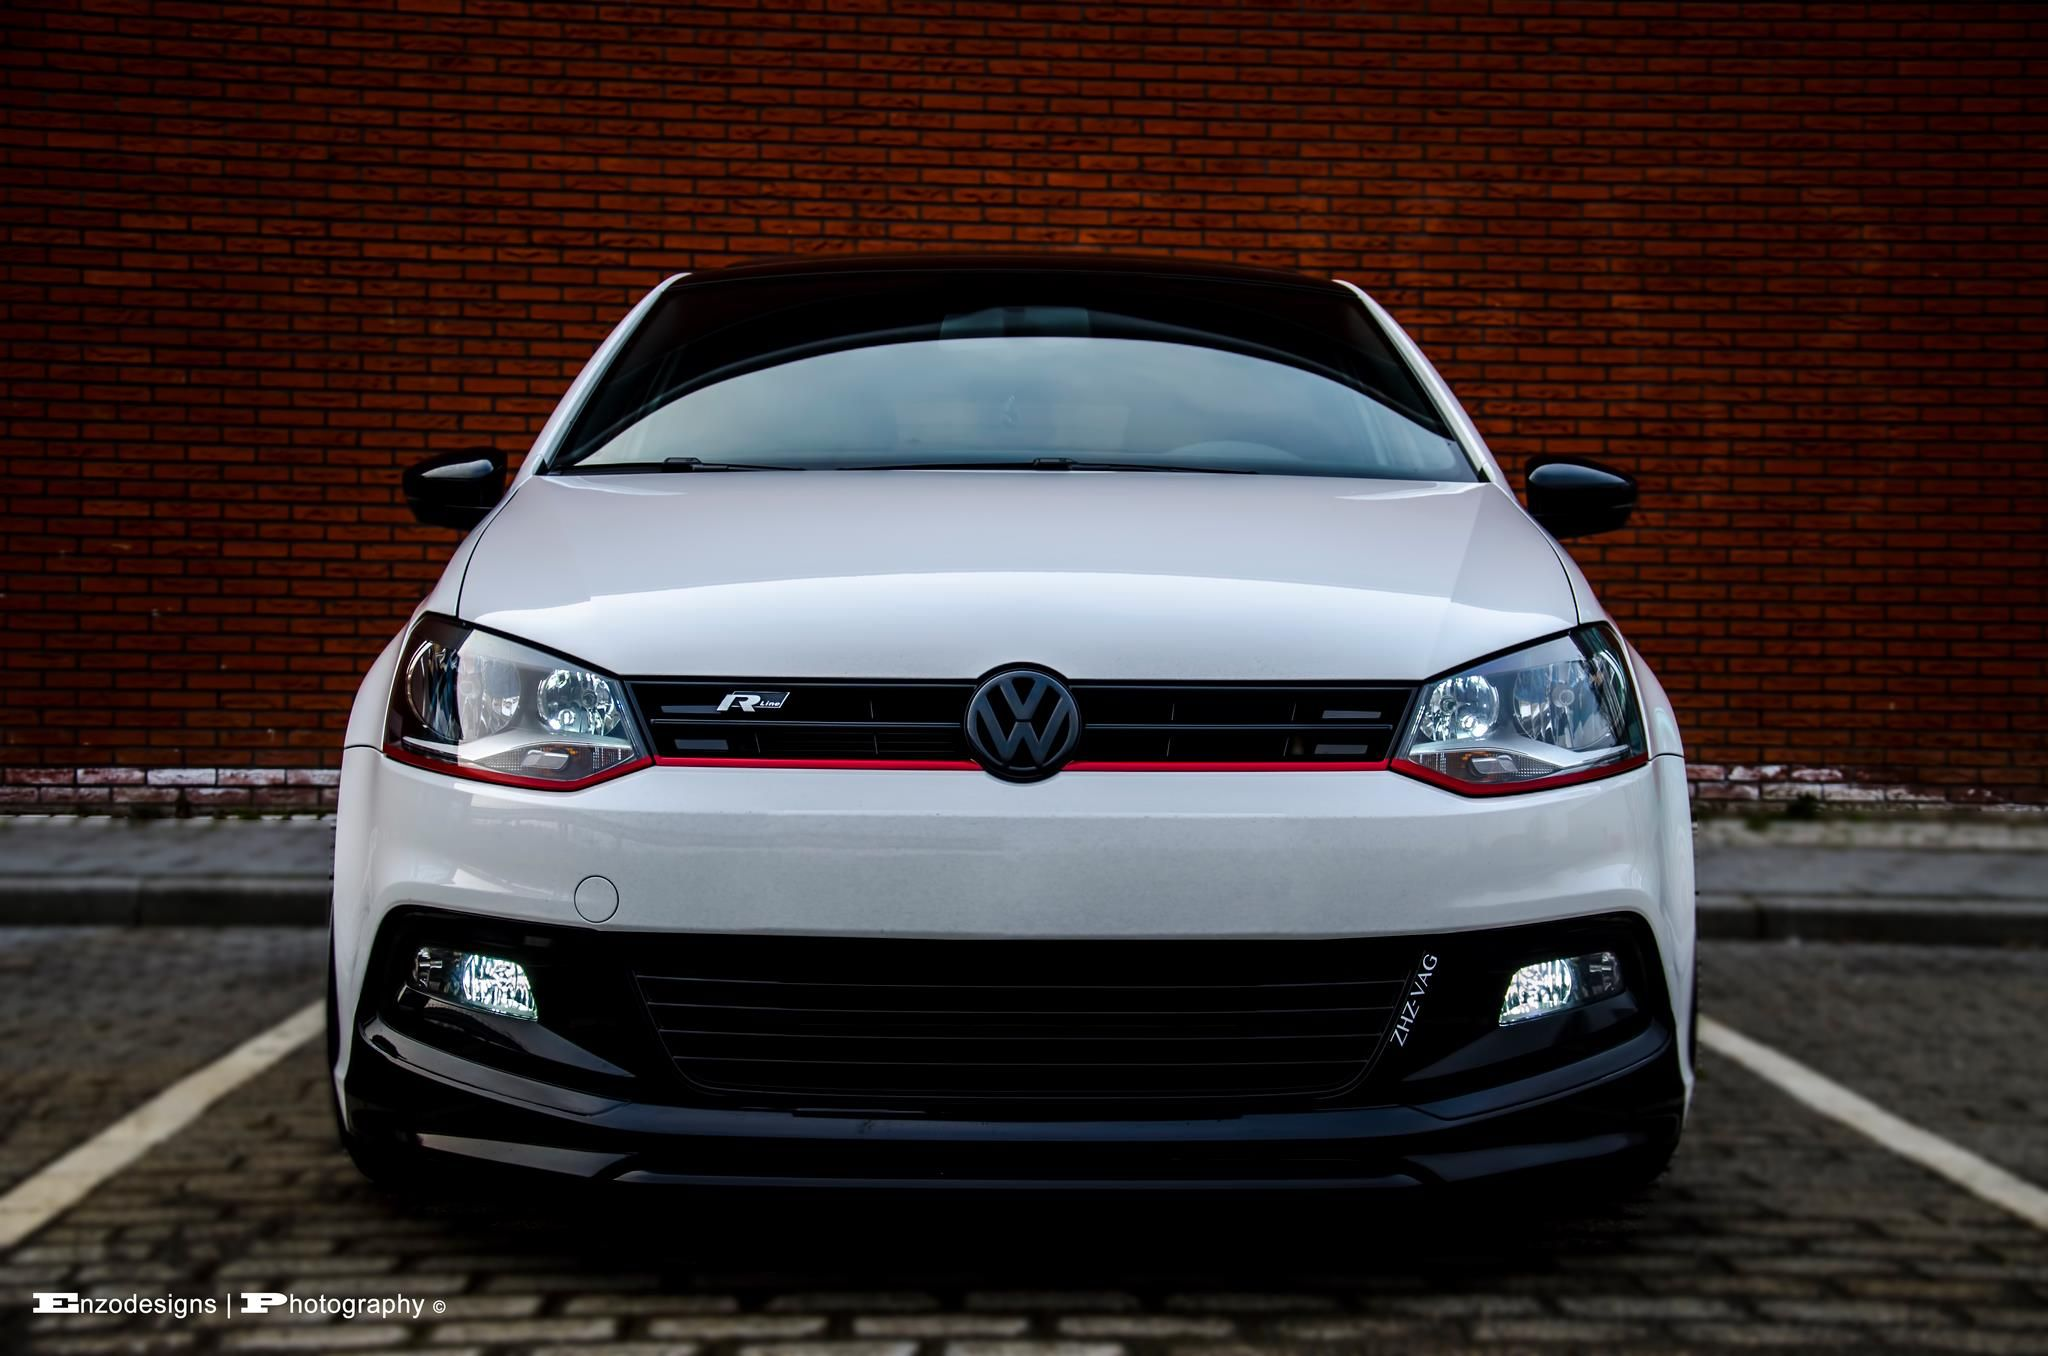 Blacked Out Front Polo 6r Volkswagen Polo Vw Cars